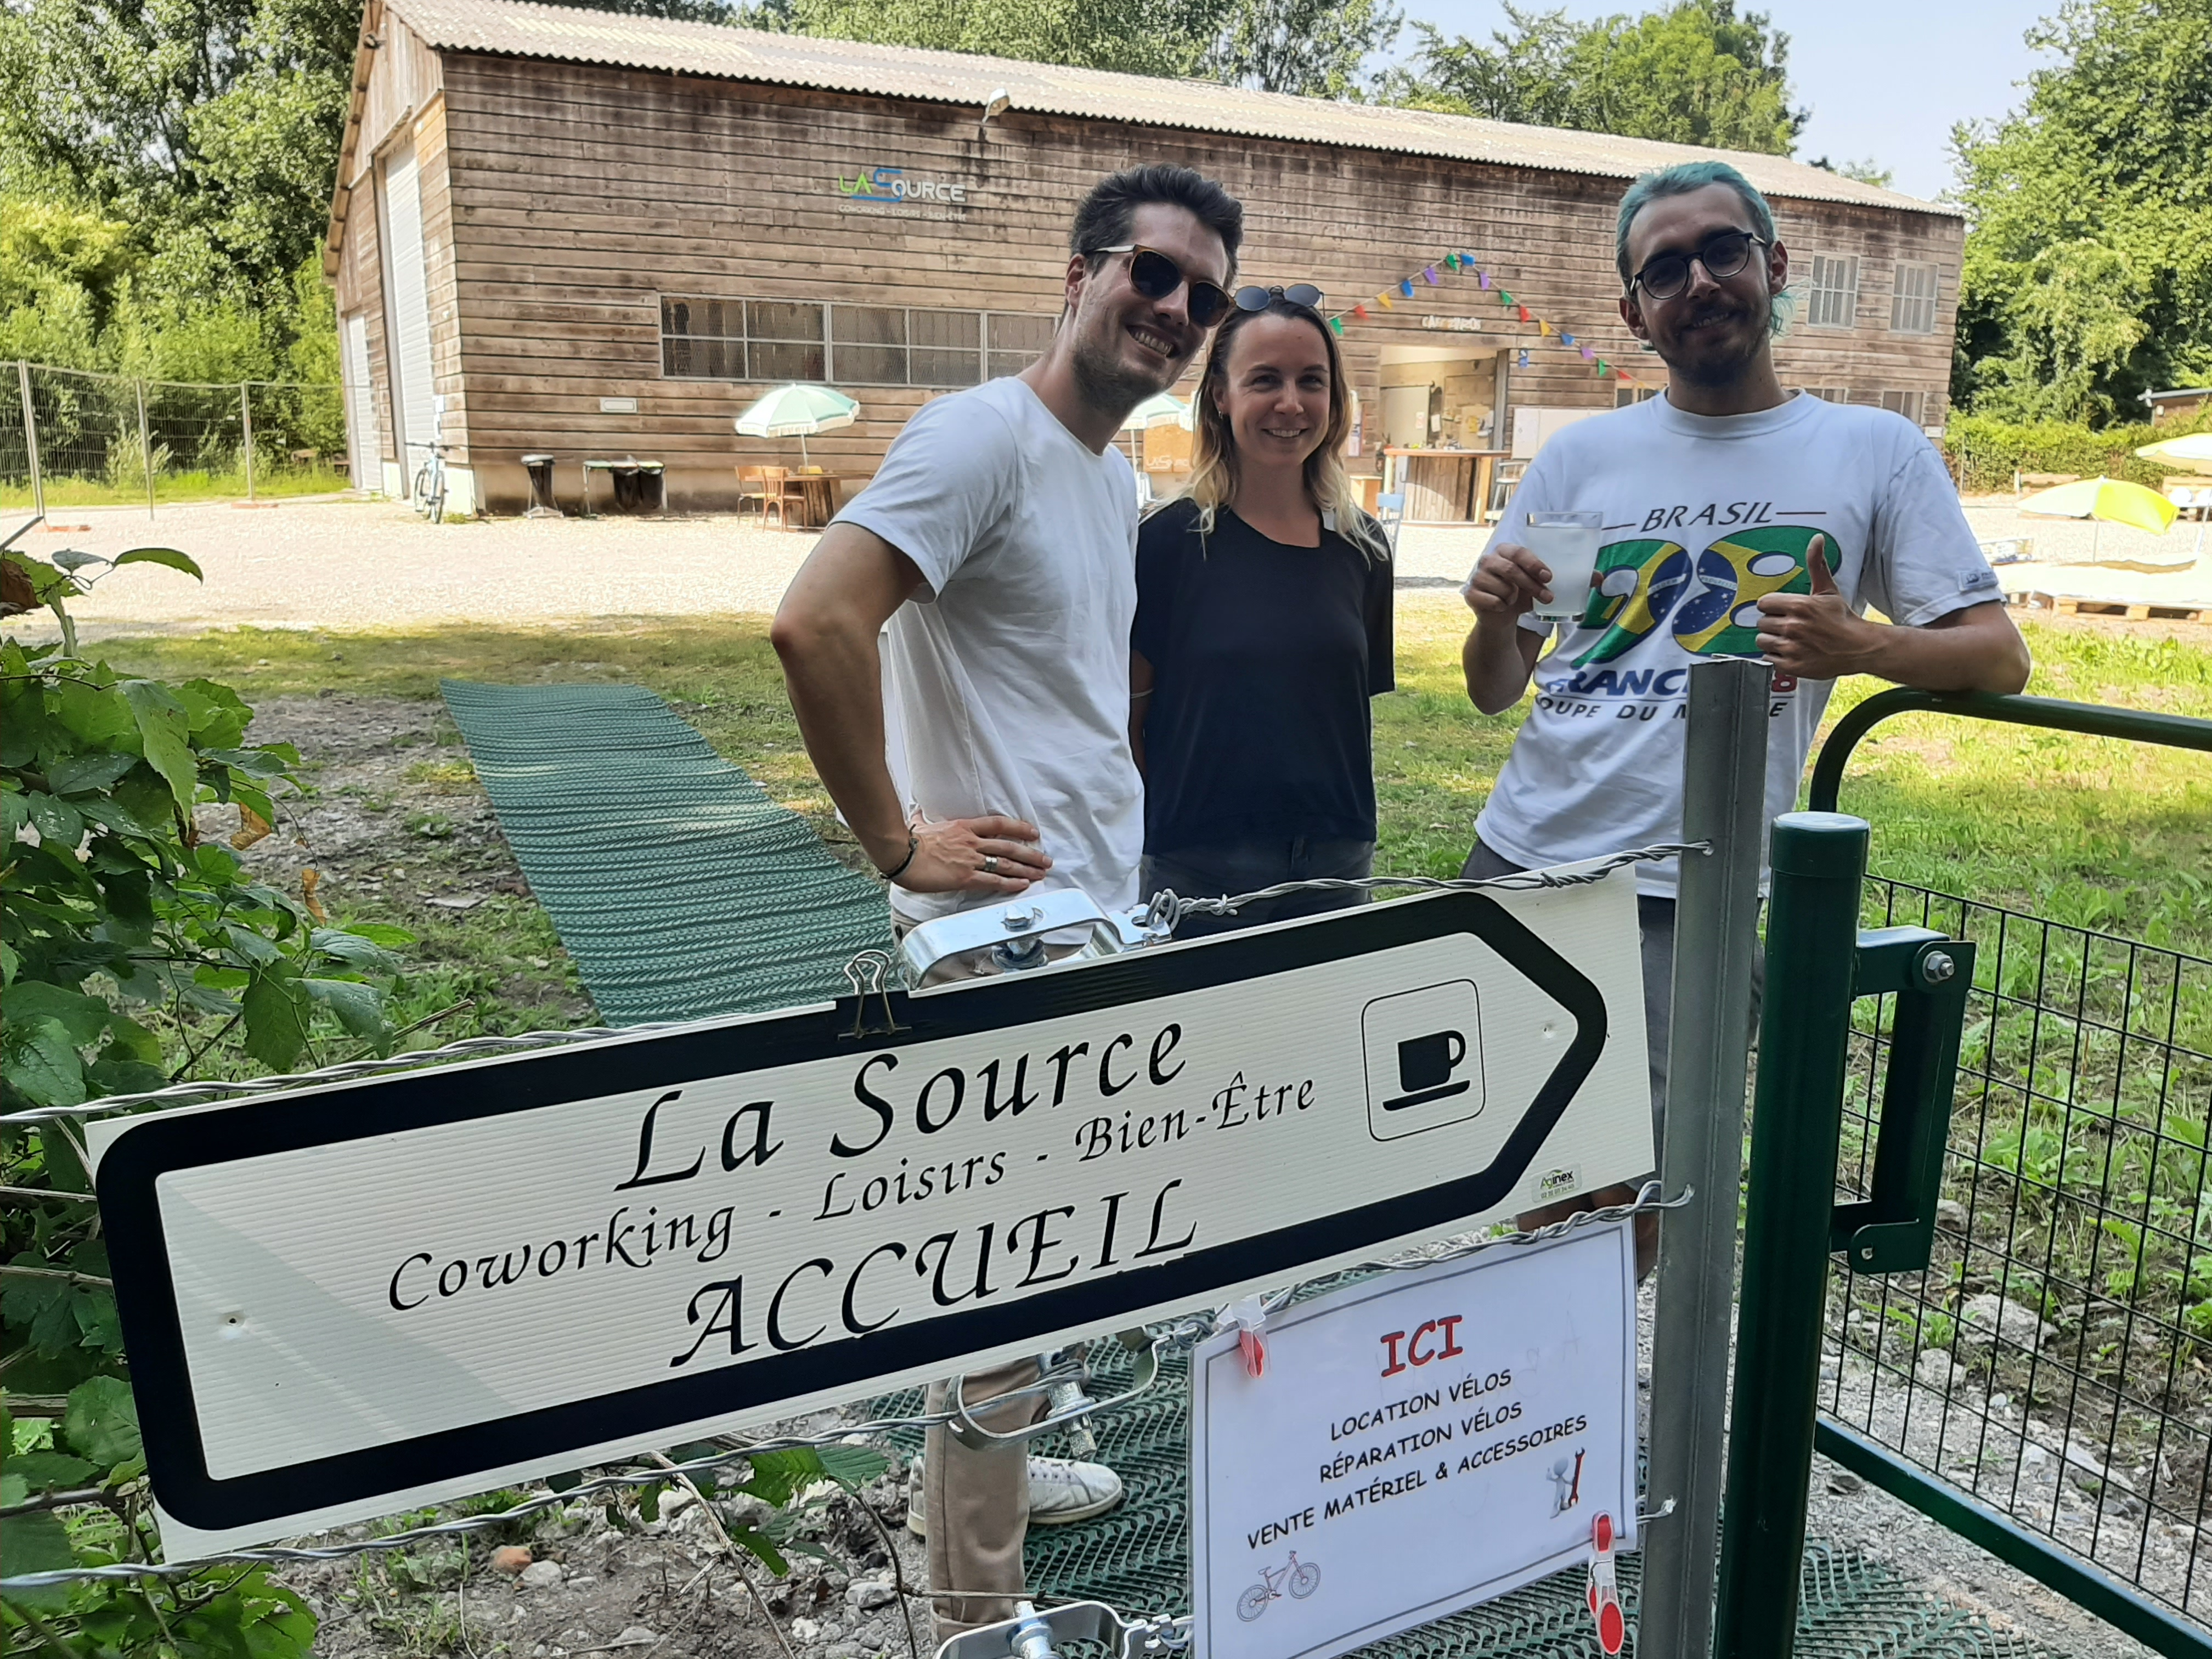 Les Zinzolins, Dimitri, Clémence and Théo offer passersby lemonade to encourage them to discover La Source